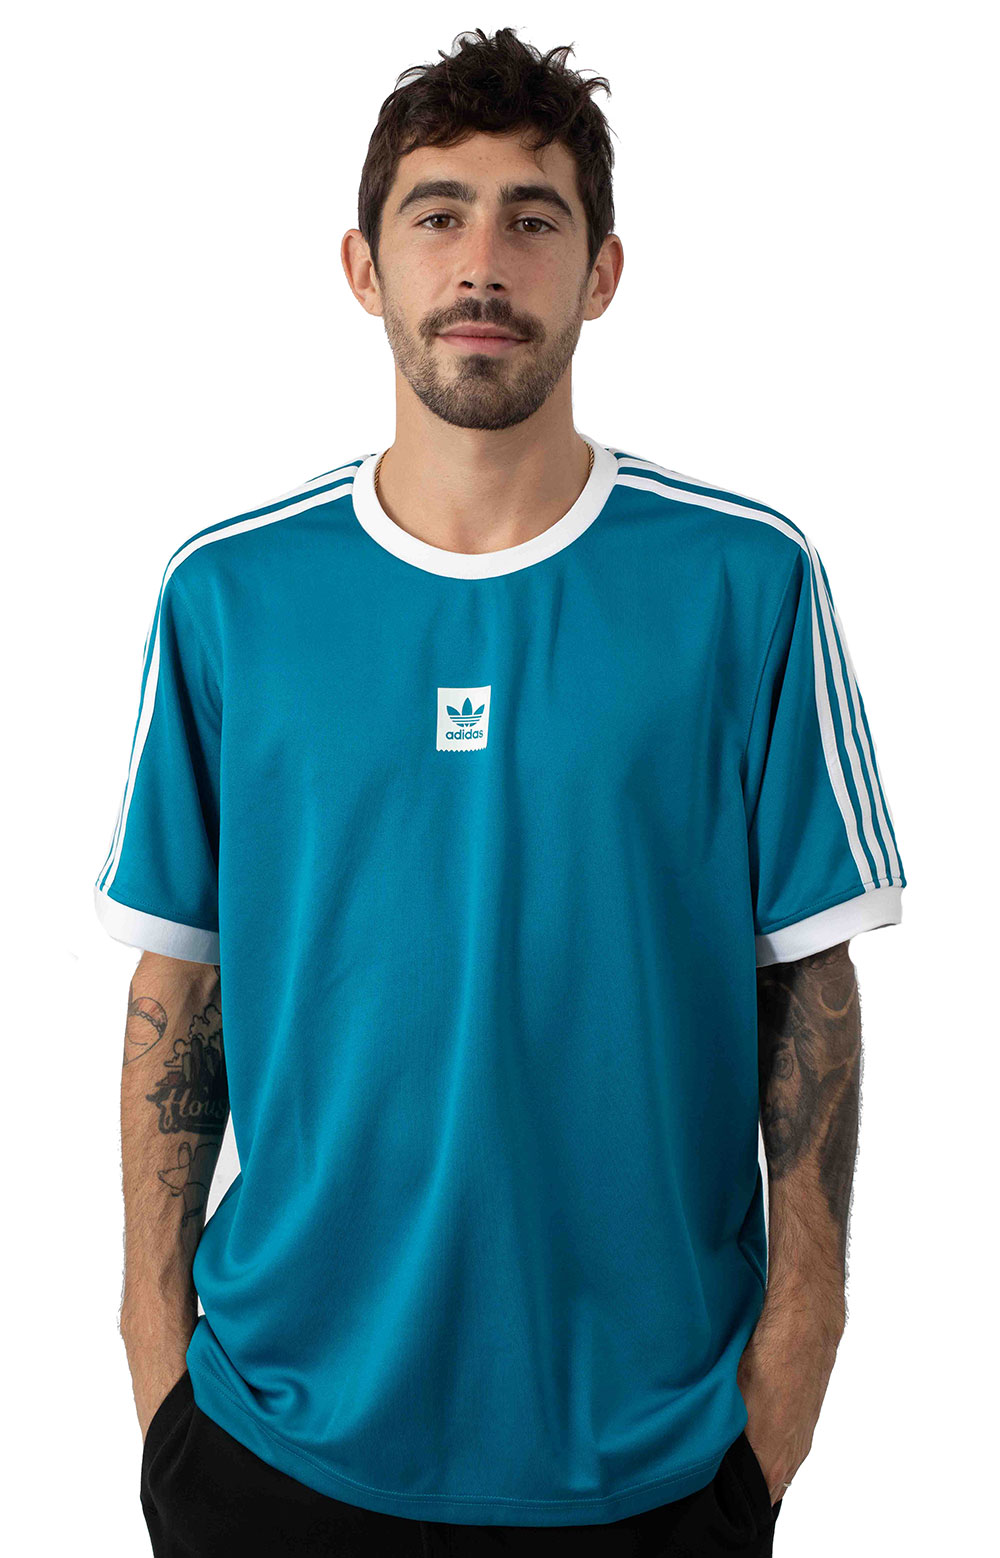 Club Jersey - Active Teal/White